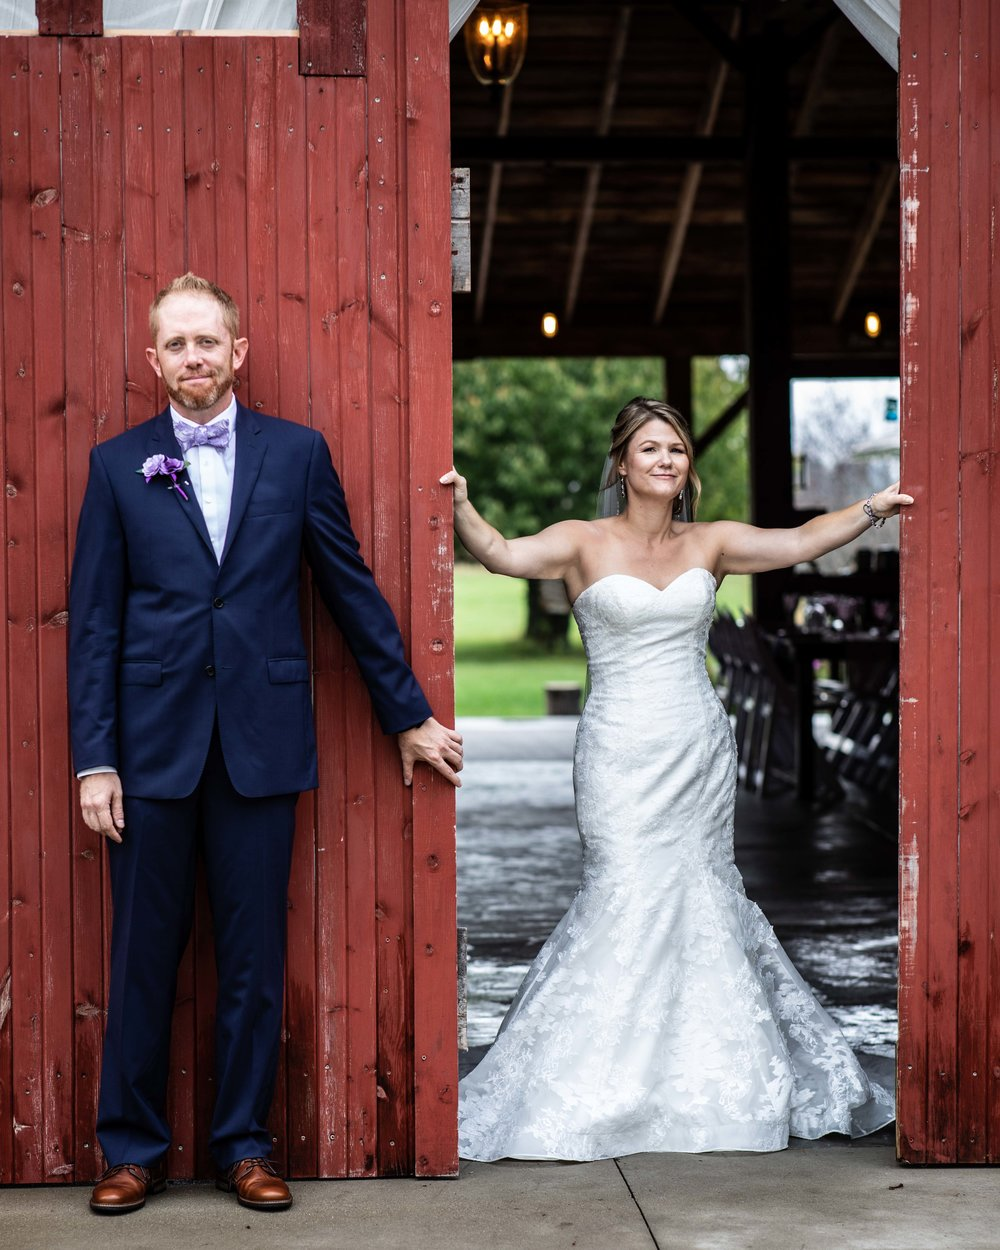 The Bride and Groom's hidden first look with the bride in the barn and groom just outside